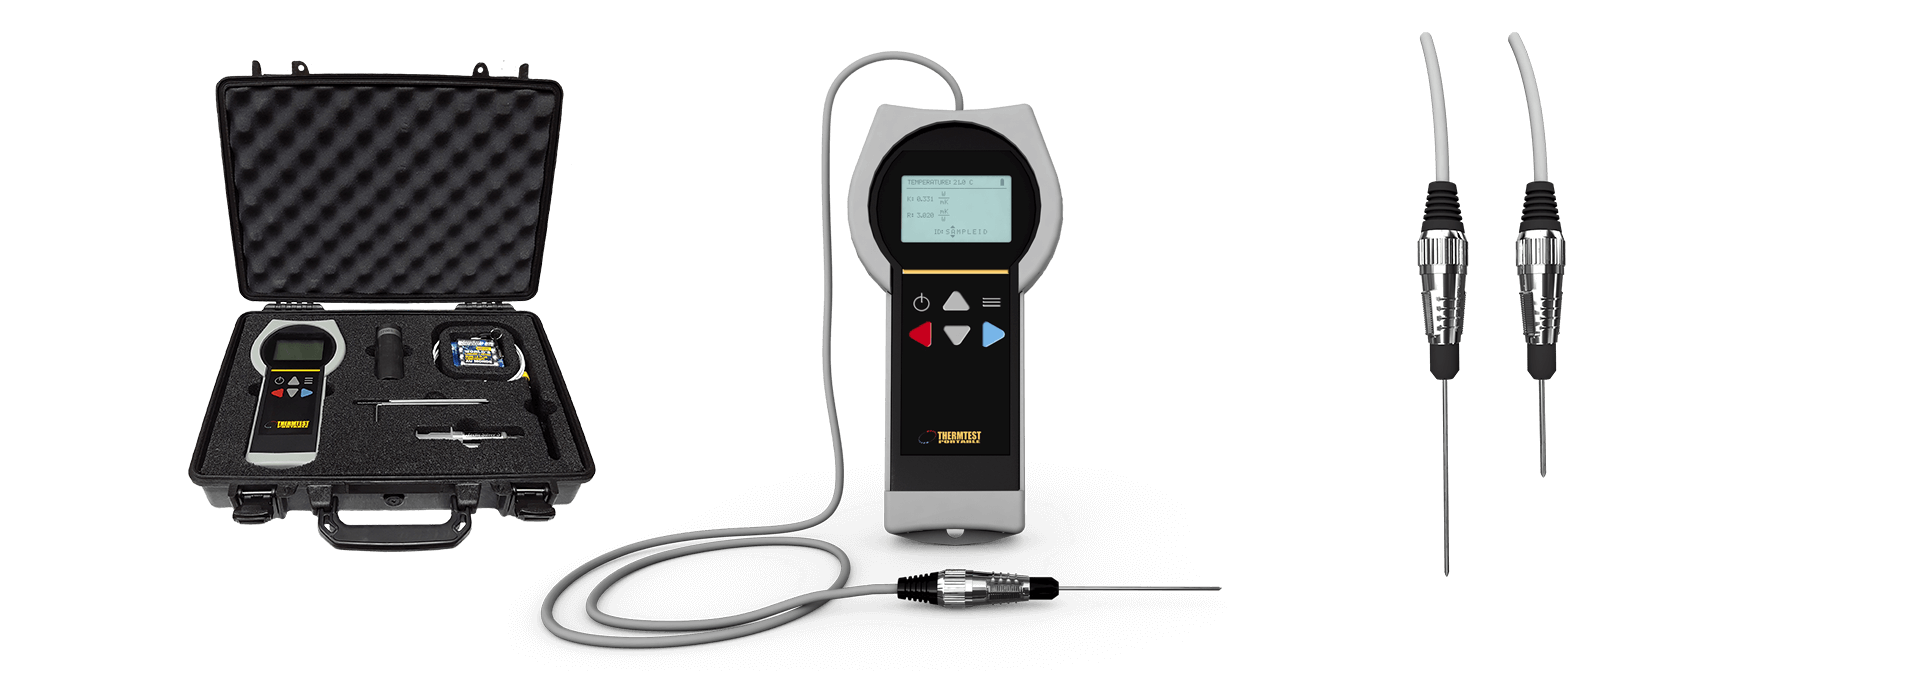 Soil Thermal Conductivity Meter TLS-100 Portable Equipment